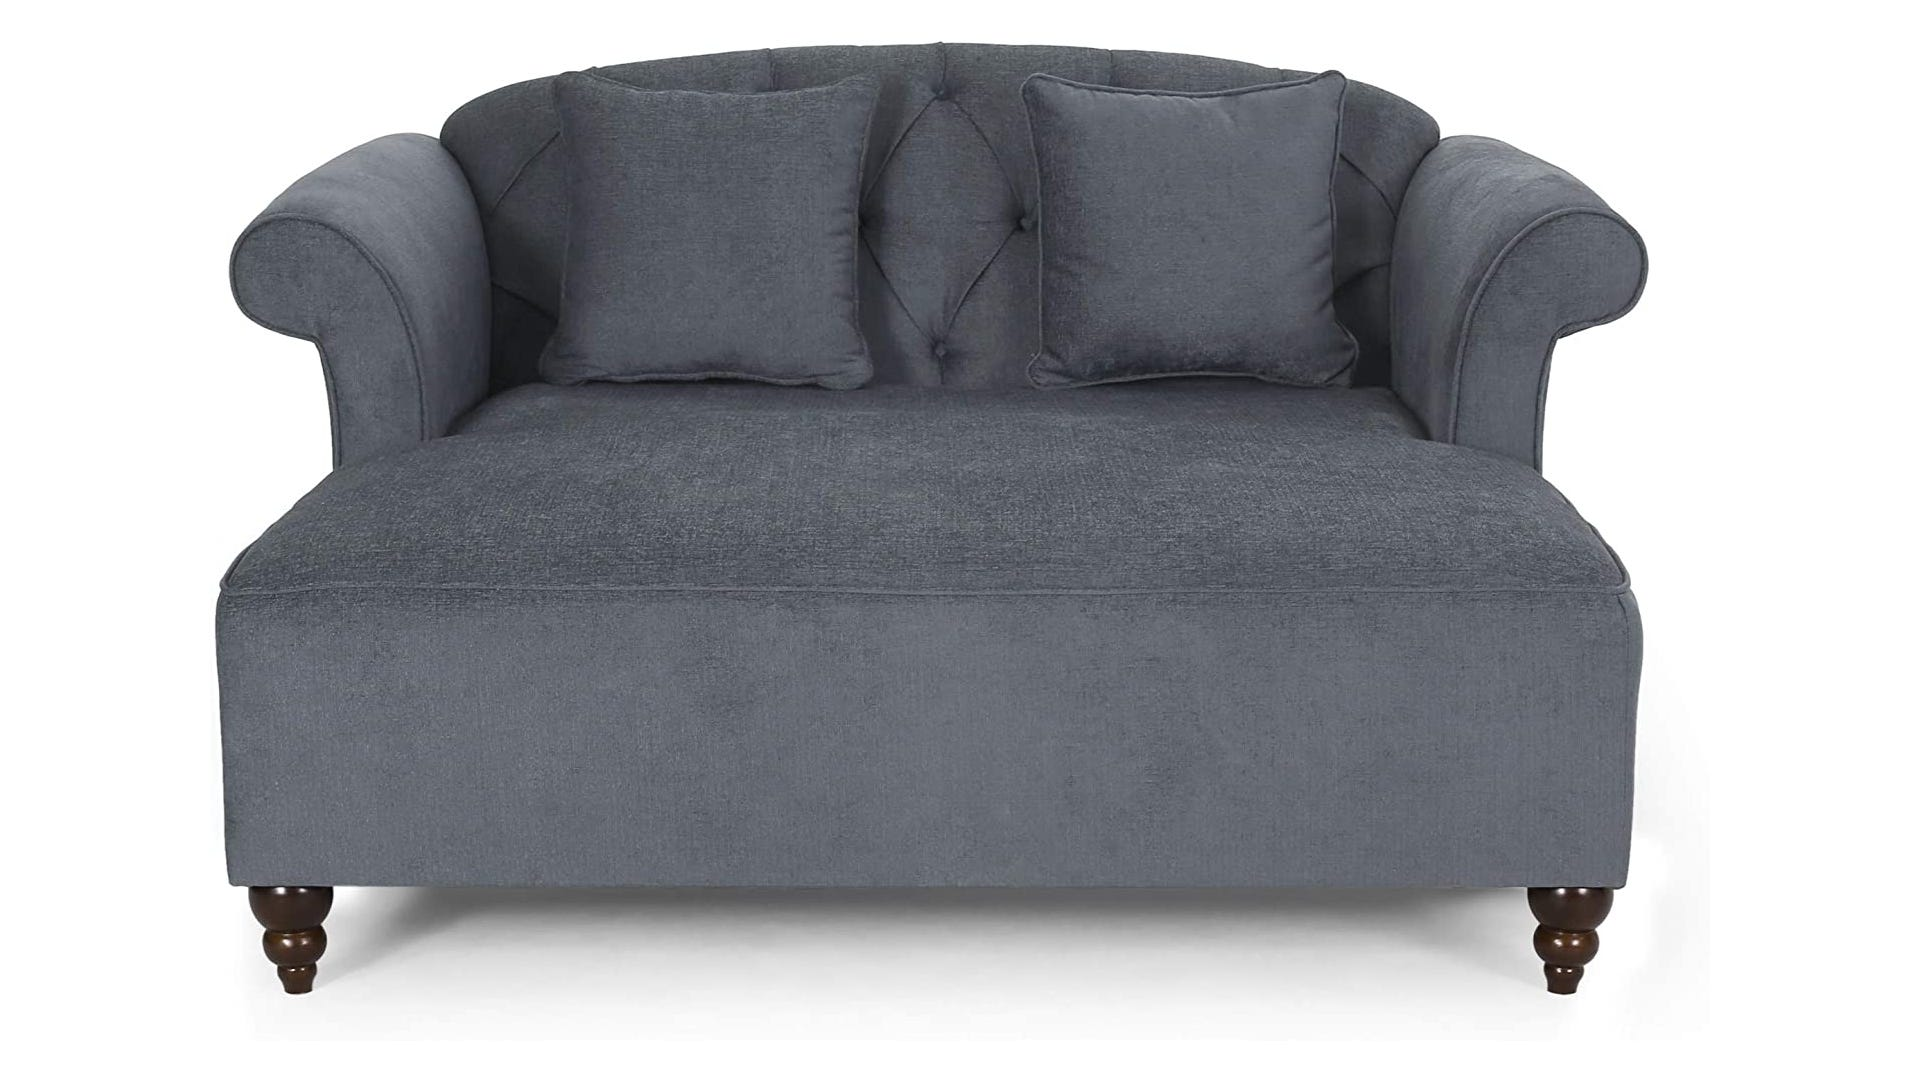 A cushioned gray double lounge chair with two pillows and diamond stitching.